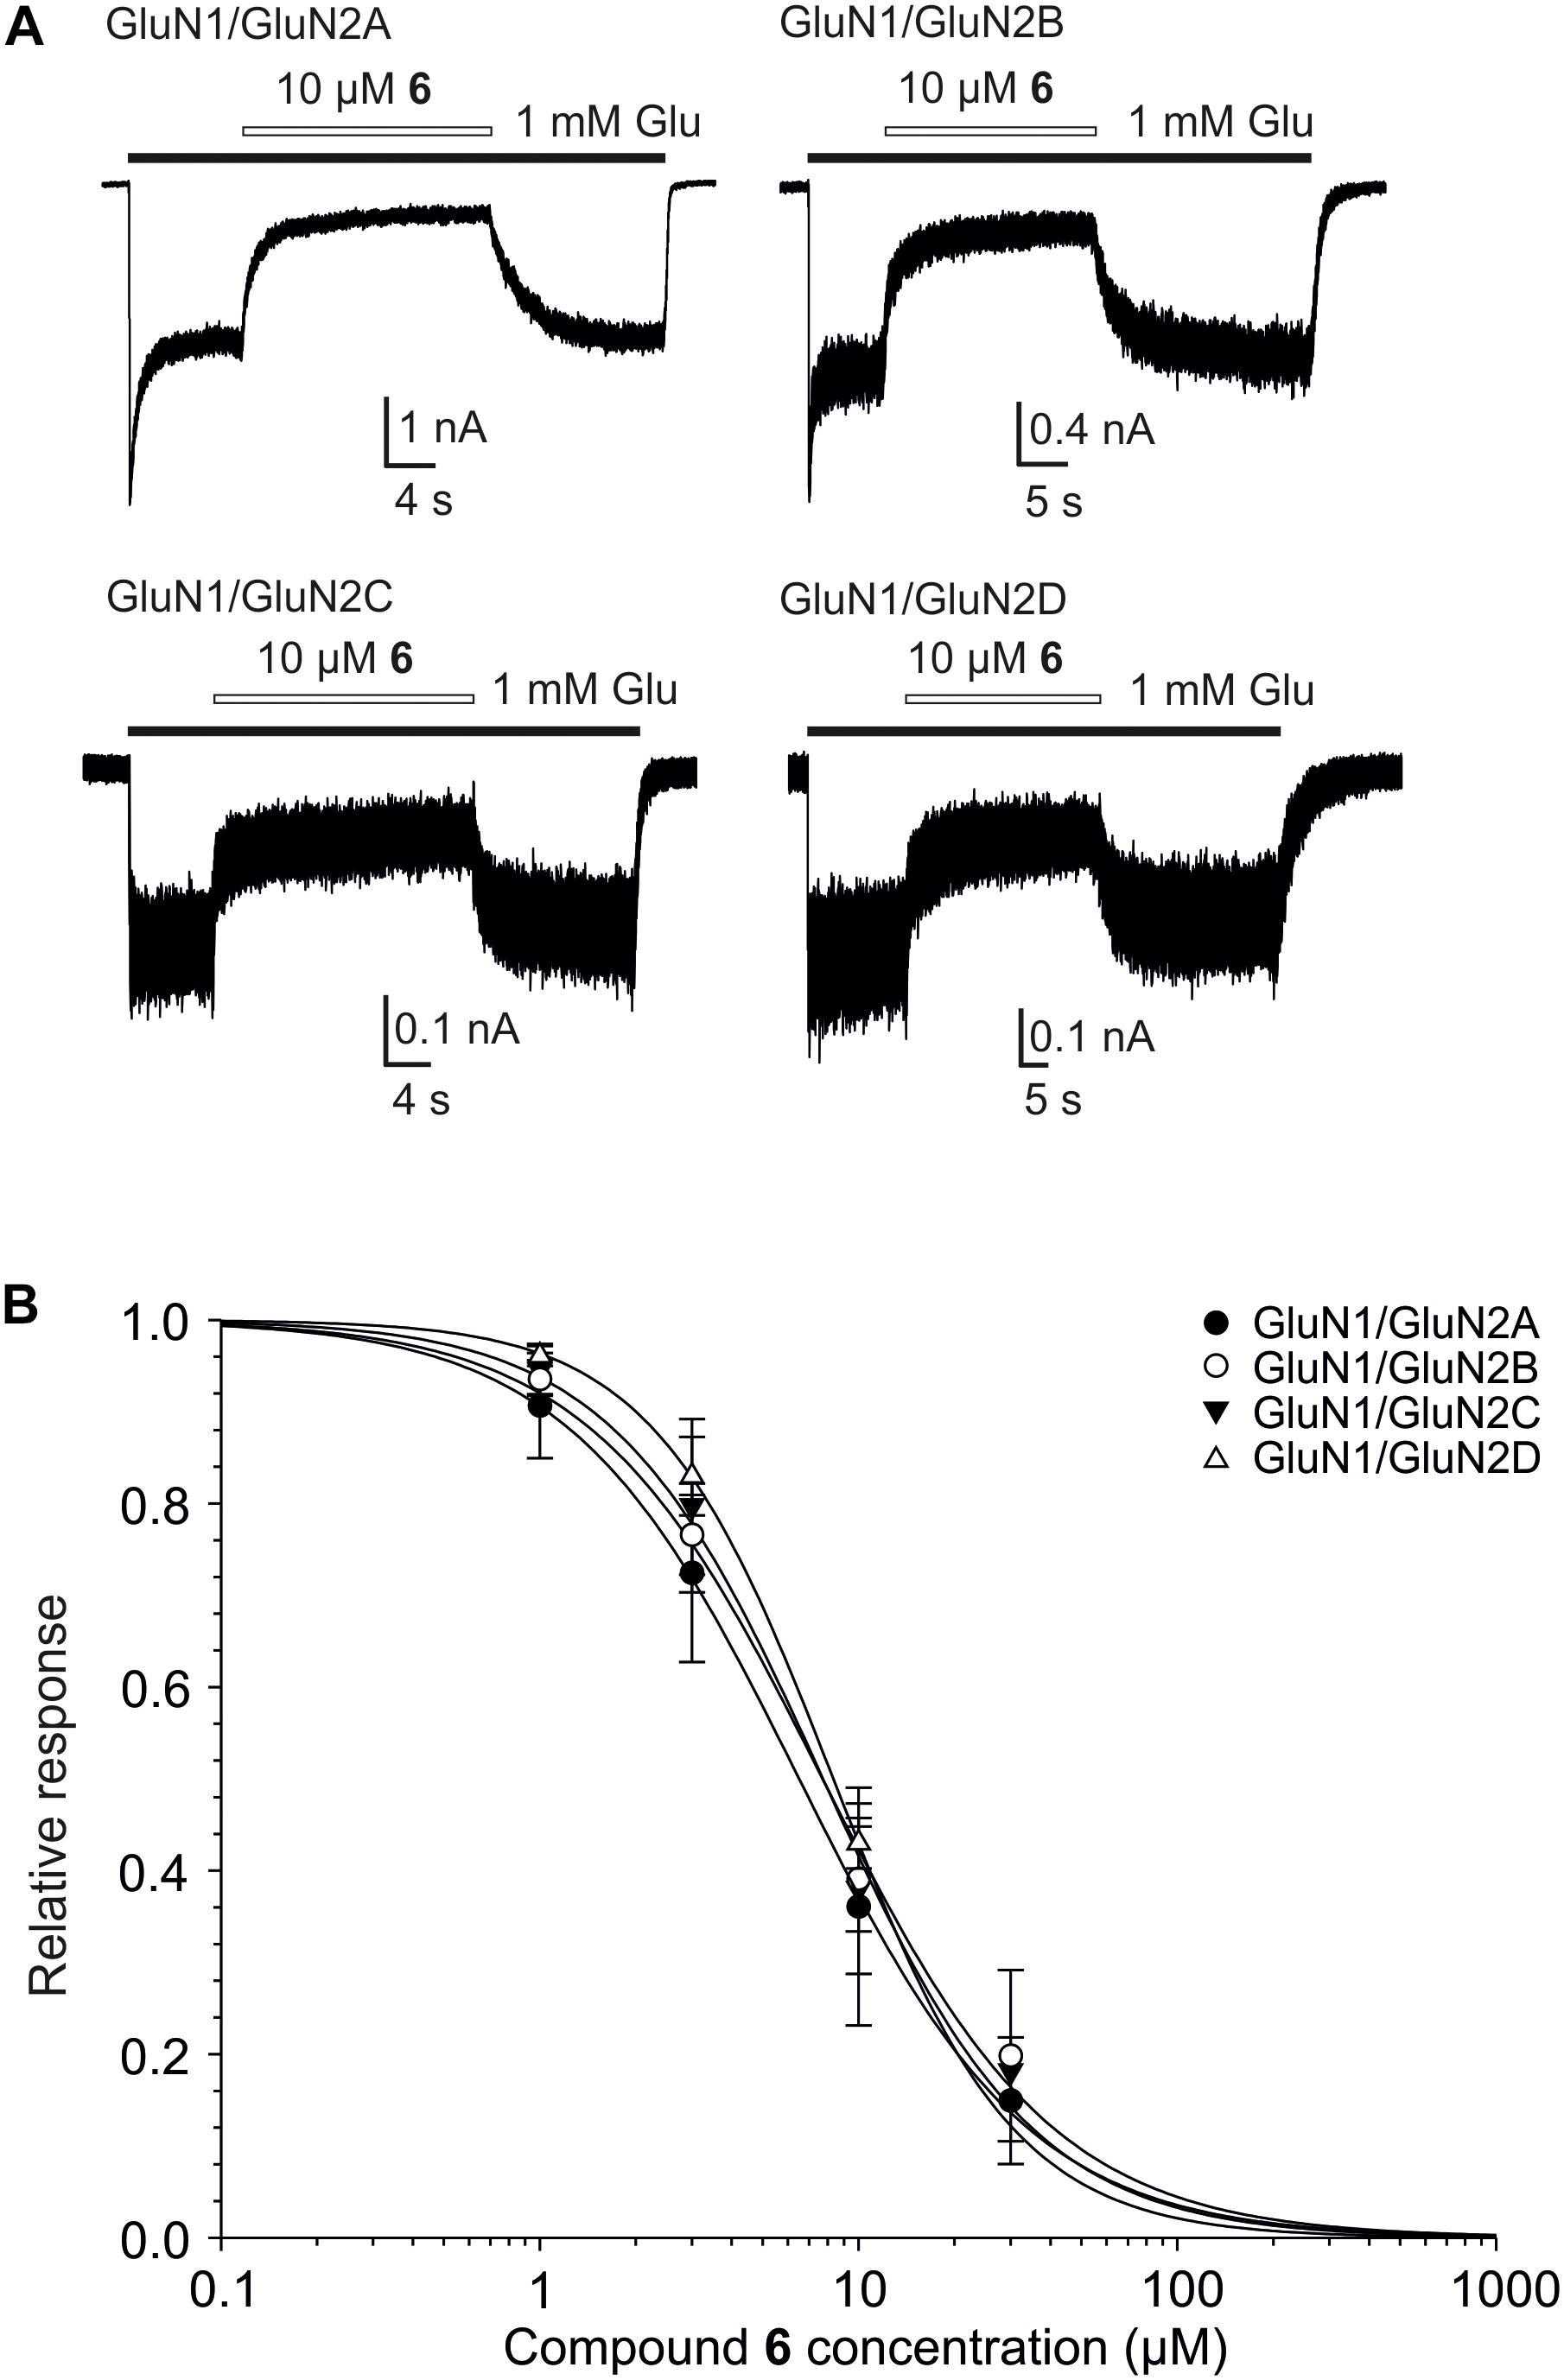 Frontiers | Strong Inhibitory Effect, Low Cytotoxicity and